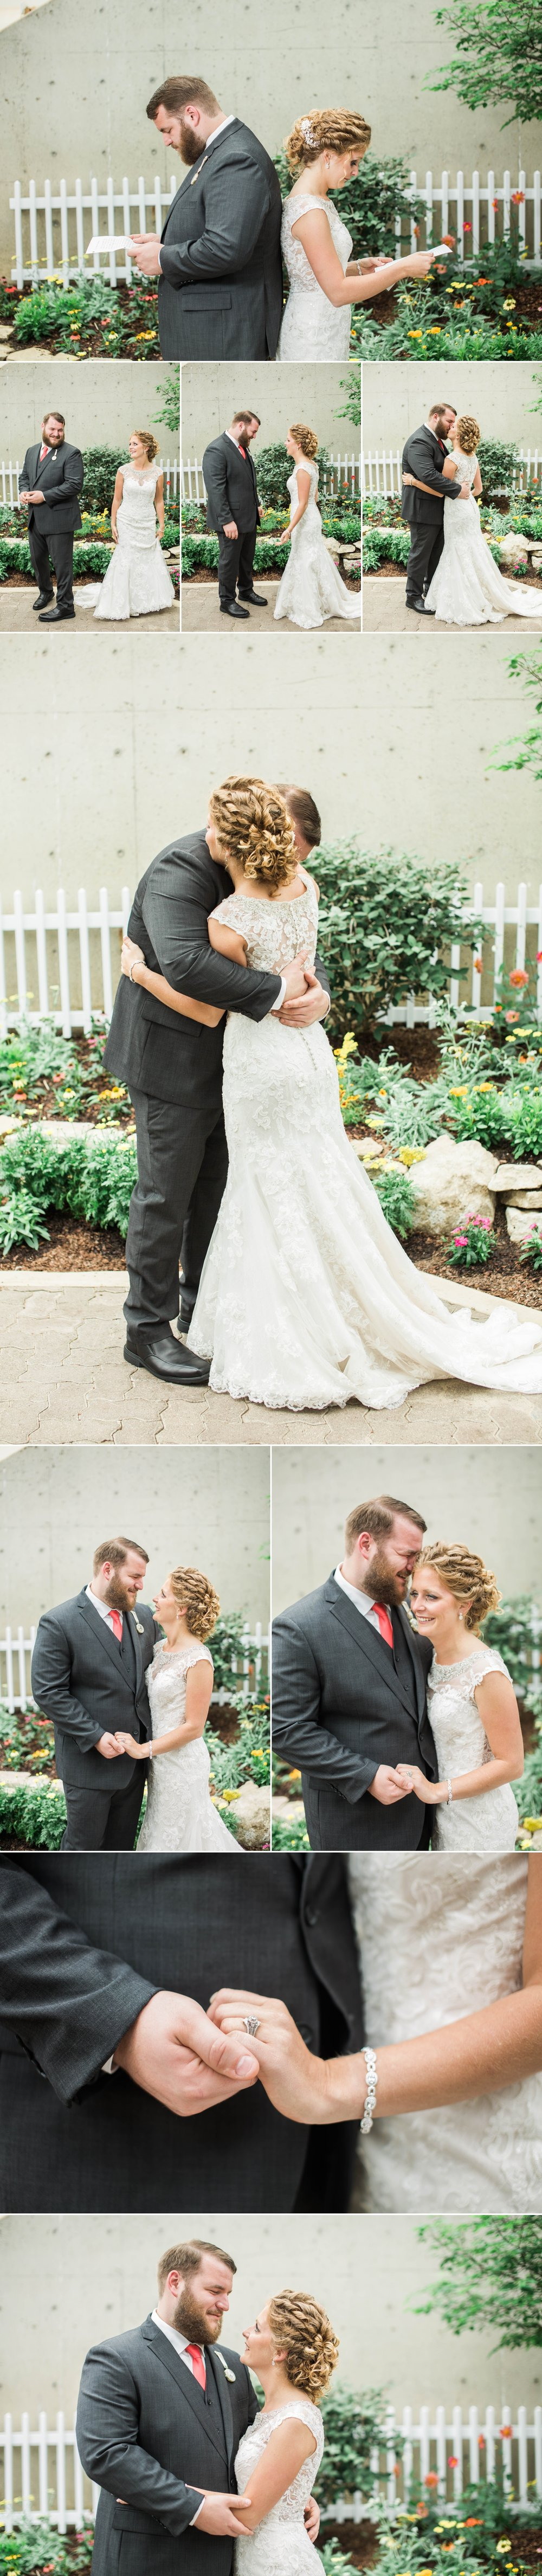 first look - bride and groom - botanical gardens